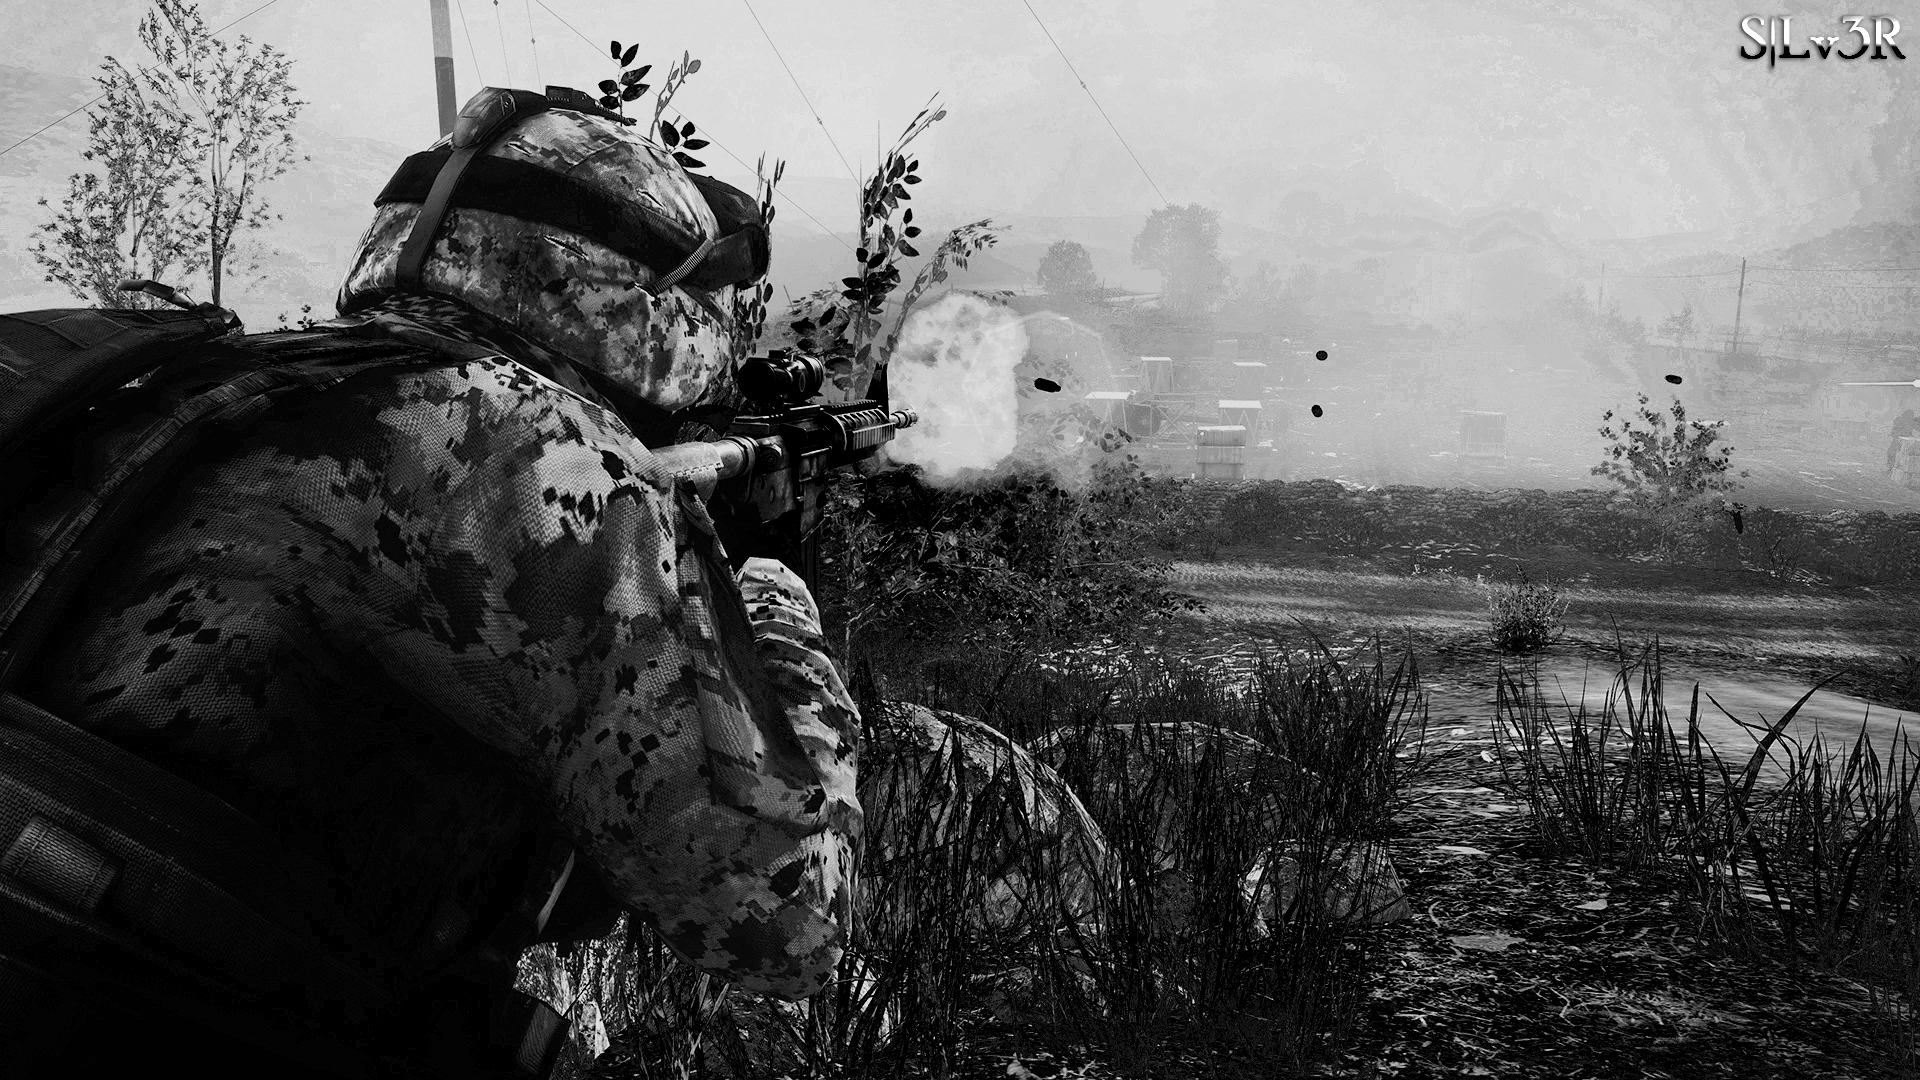 Battlefield 1 War Video Game Hd Wallpaper: ForestFire Black & White Full HD Wallpaper And Background